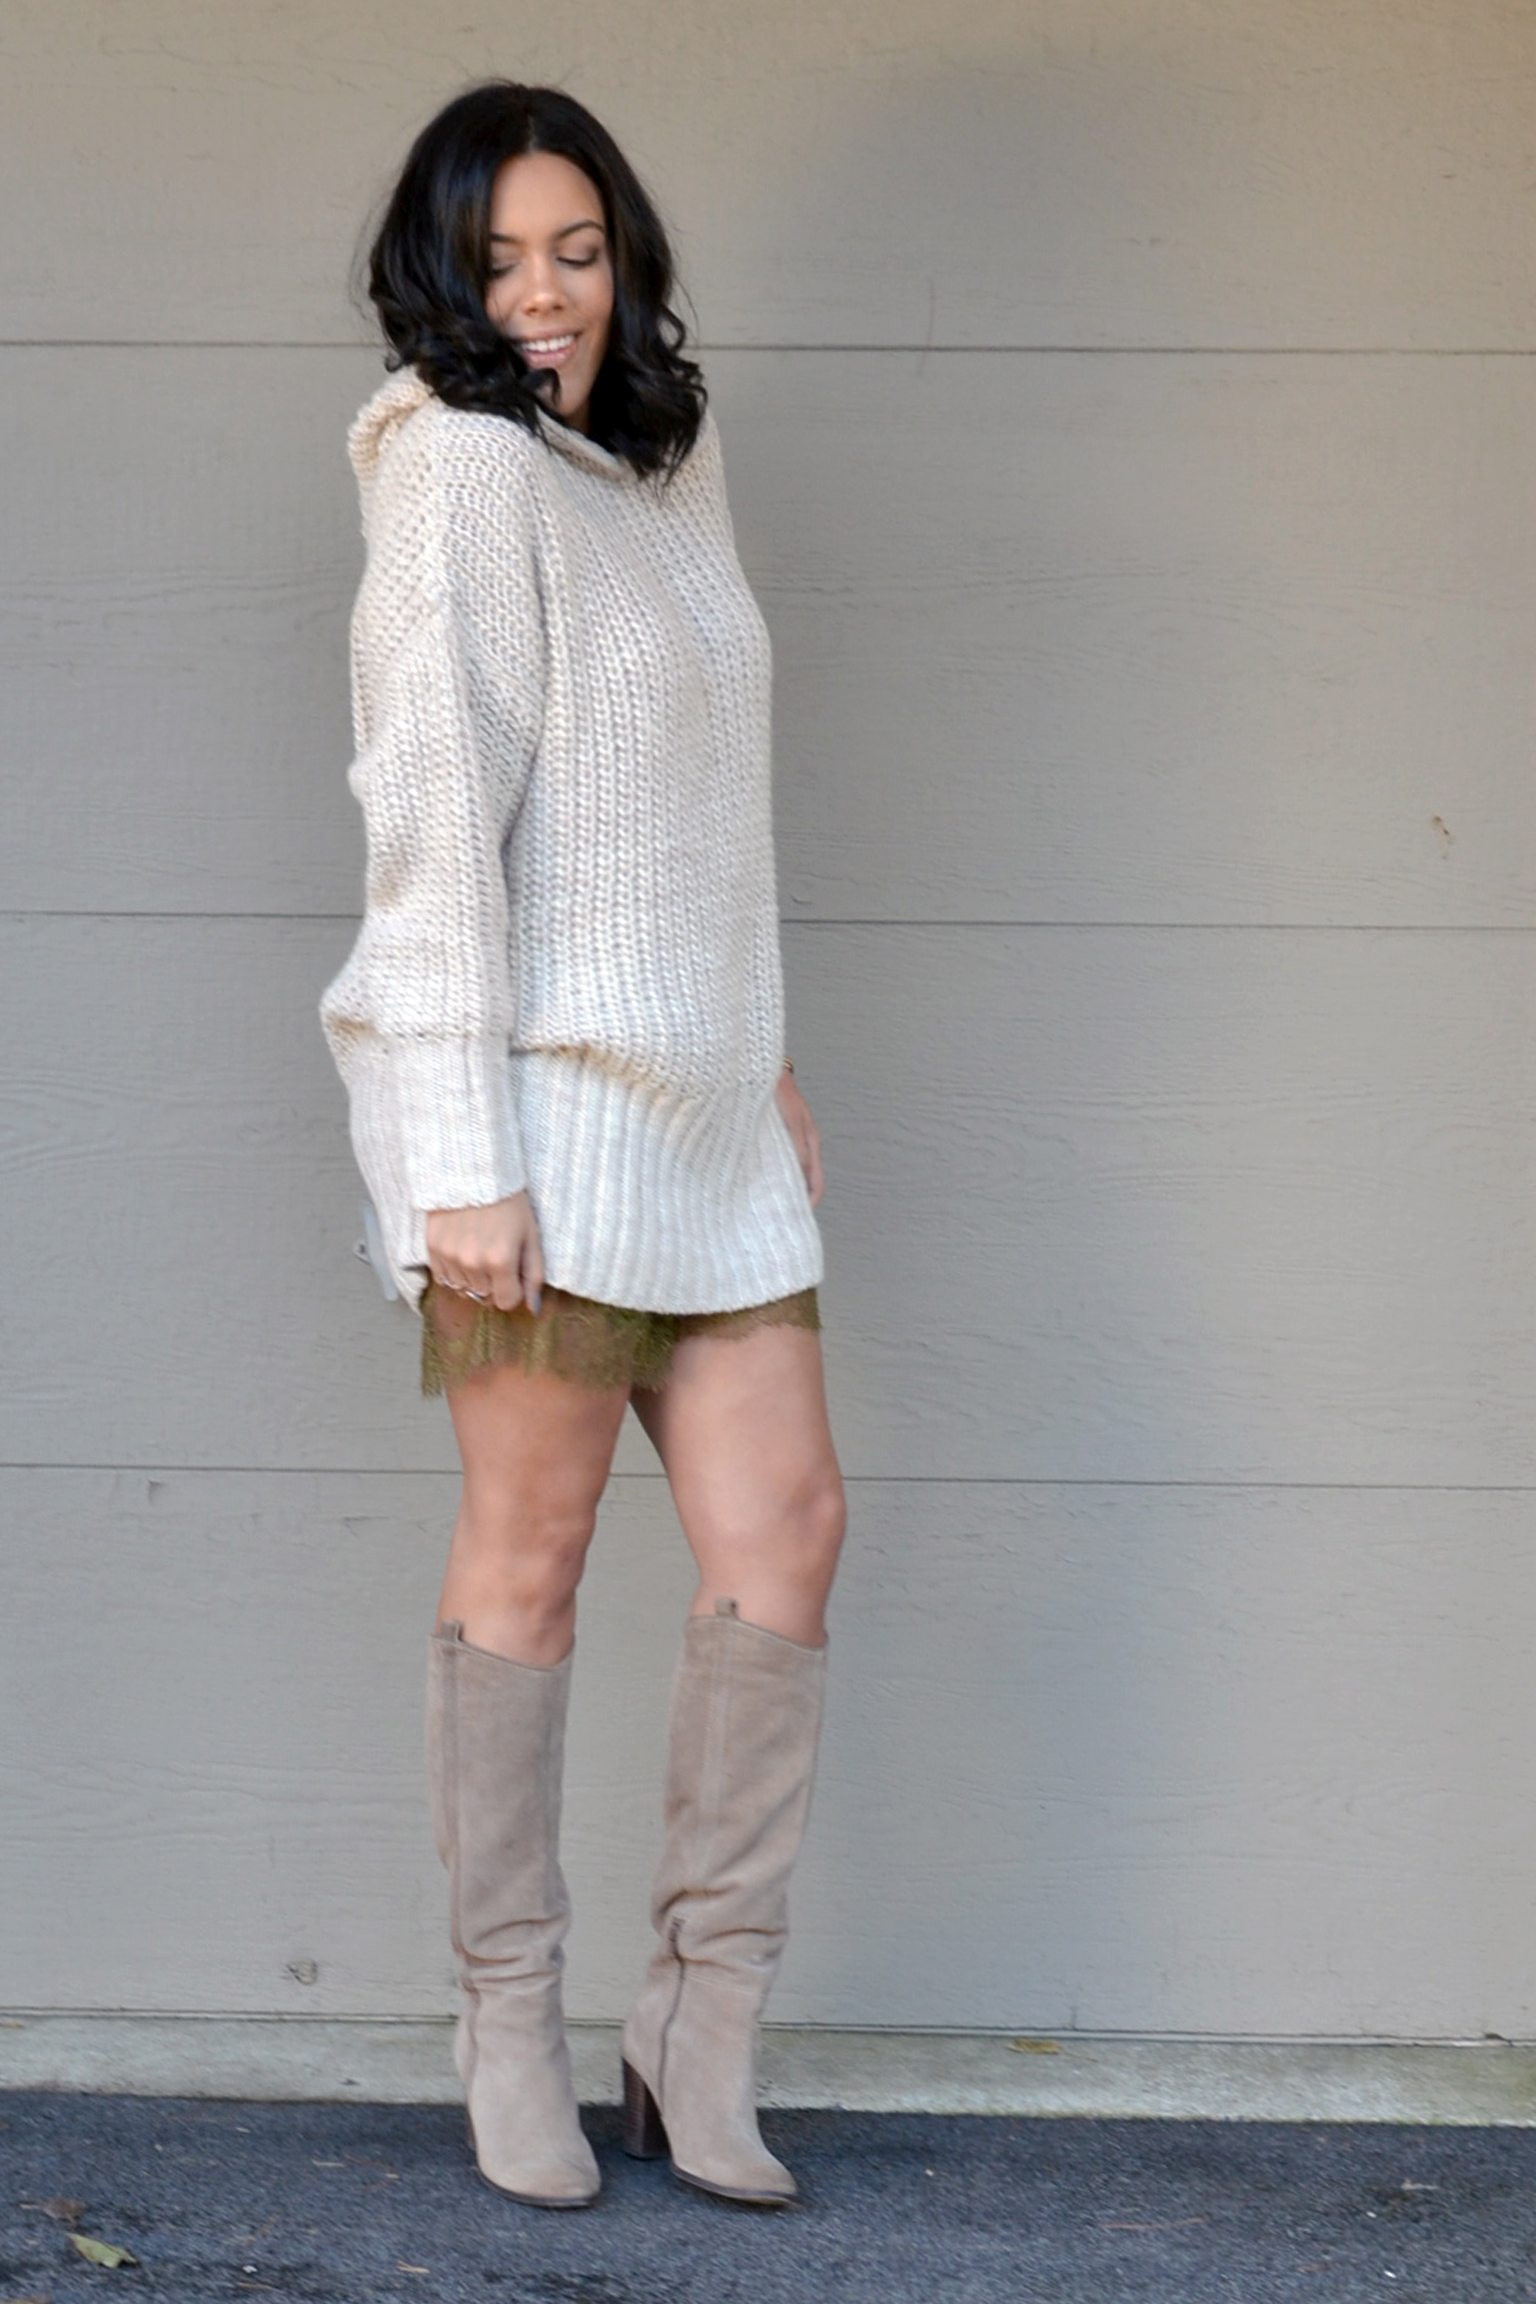 how-to-wear-h&m-knit-hooded-sweater-studio-lace-trim-shorts-dolce-vita-myste-boots.jpg